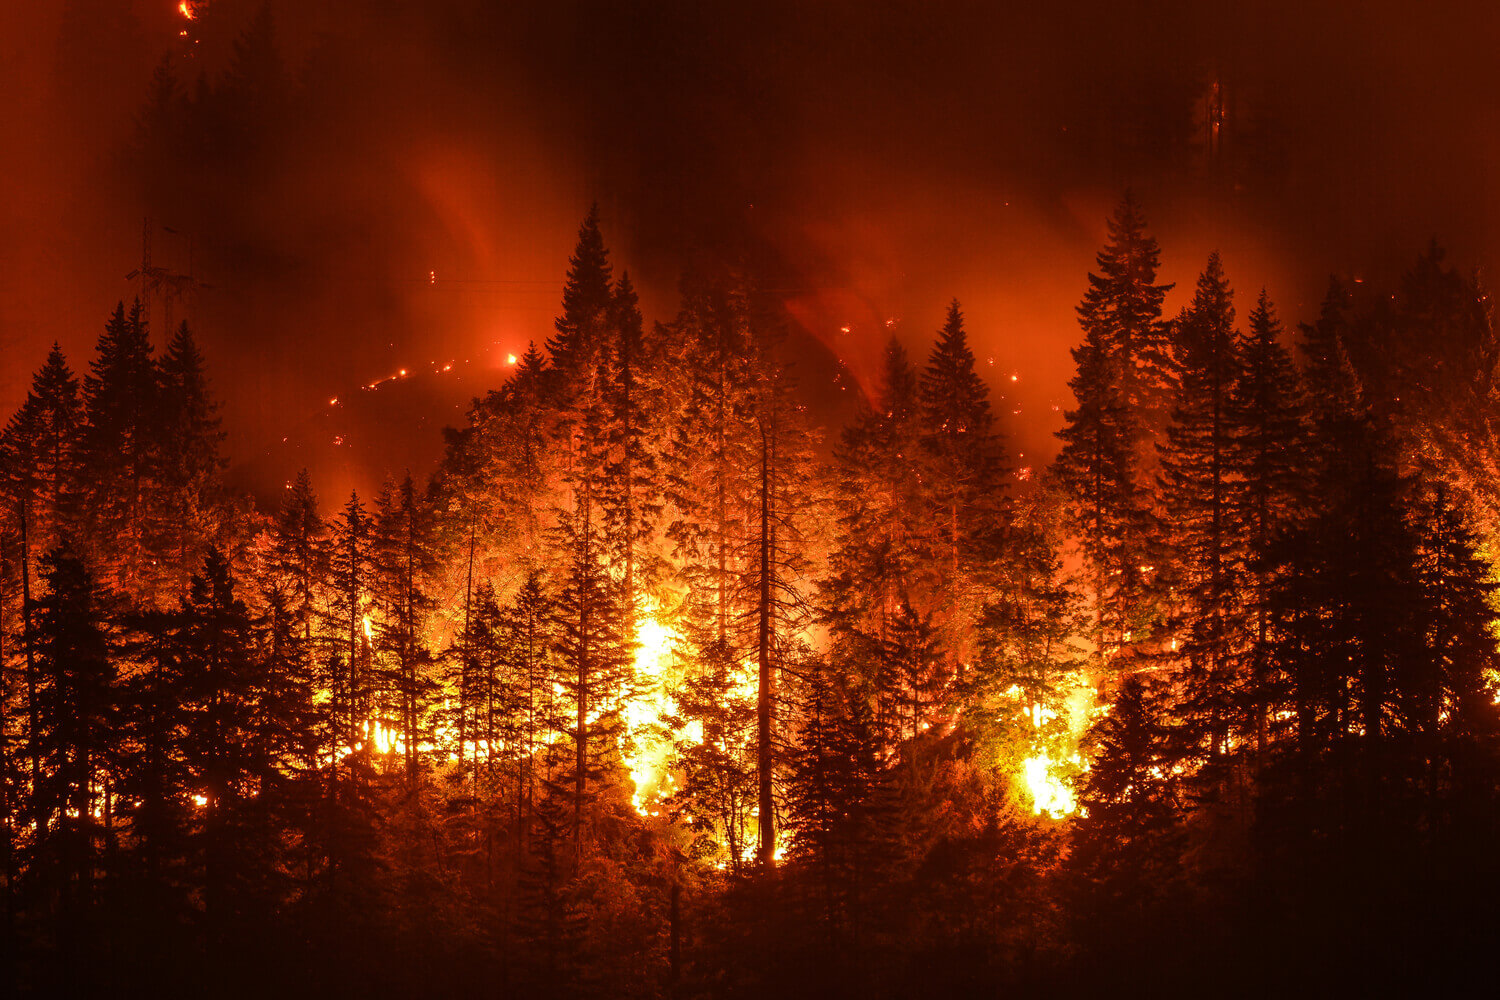 20 Devastating Pictures of the Raging Wildfires in California